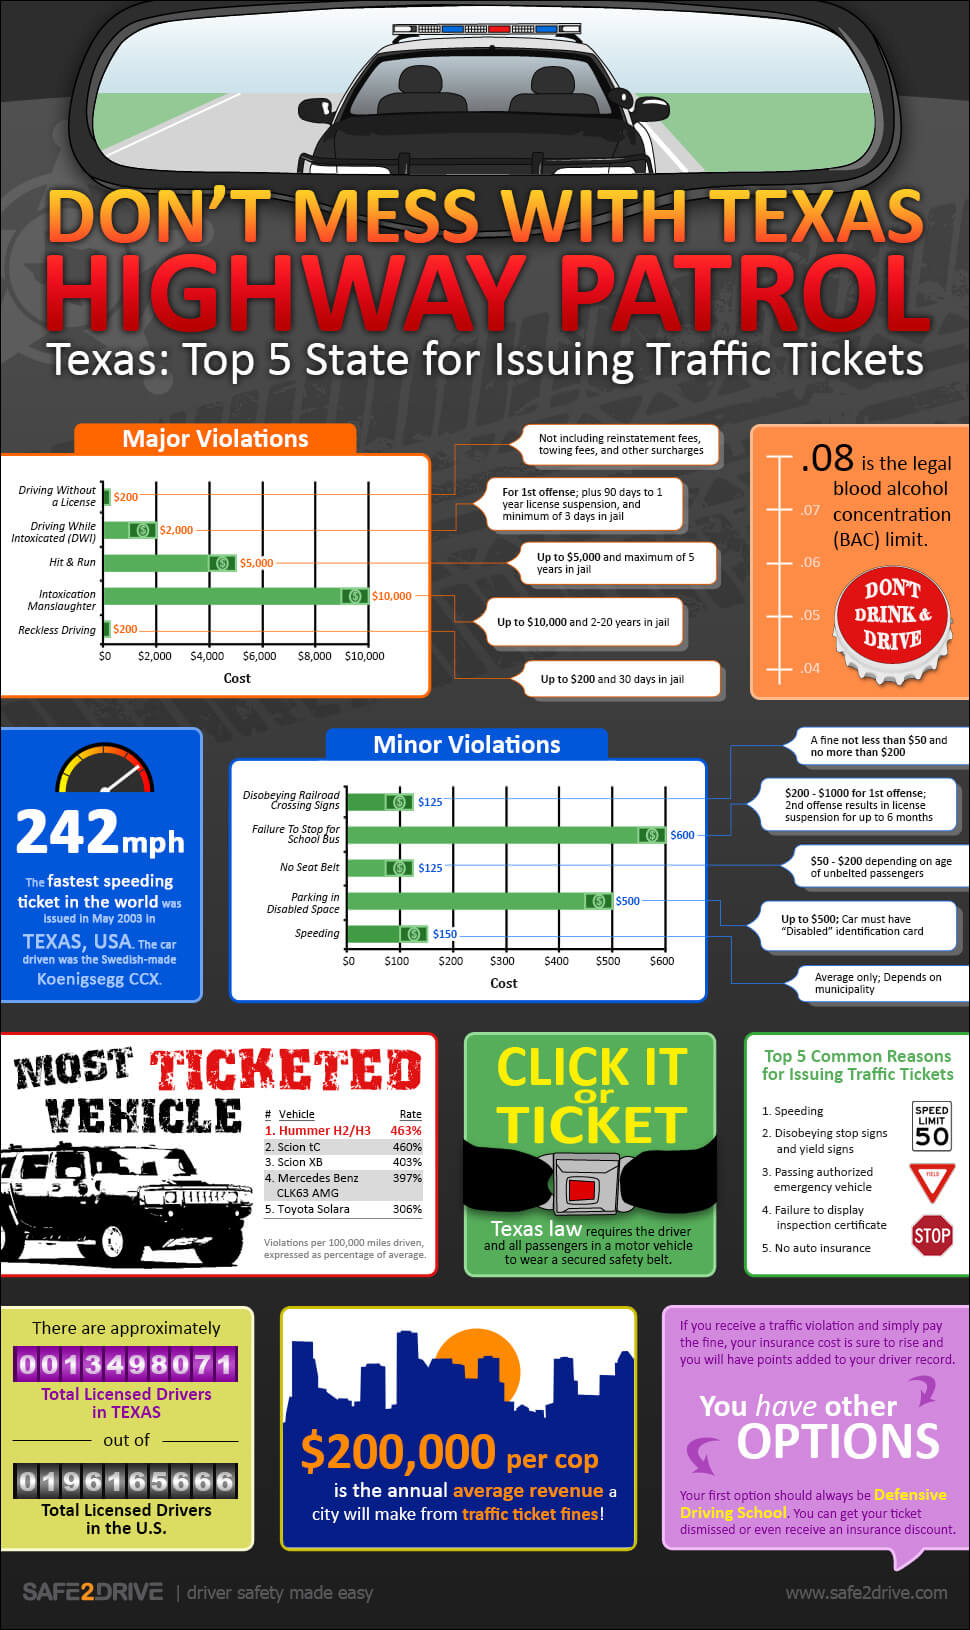 Texas Traffic Ticket Laws And Fines. Marketing Mailing Lists Get A Car Loan Online. Hp Laserjet 4000 Series Pcl6. Kearsley Retirement Community. Cell Phone Service No Contract Providers. How To Come Up With A Domain Name. Bookkeeping Free Software 2001 Gmc Sierra C3. Email List Management Service. American Diabetes Association Hemoglobin A1c